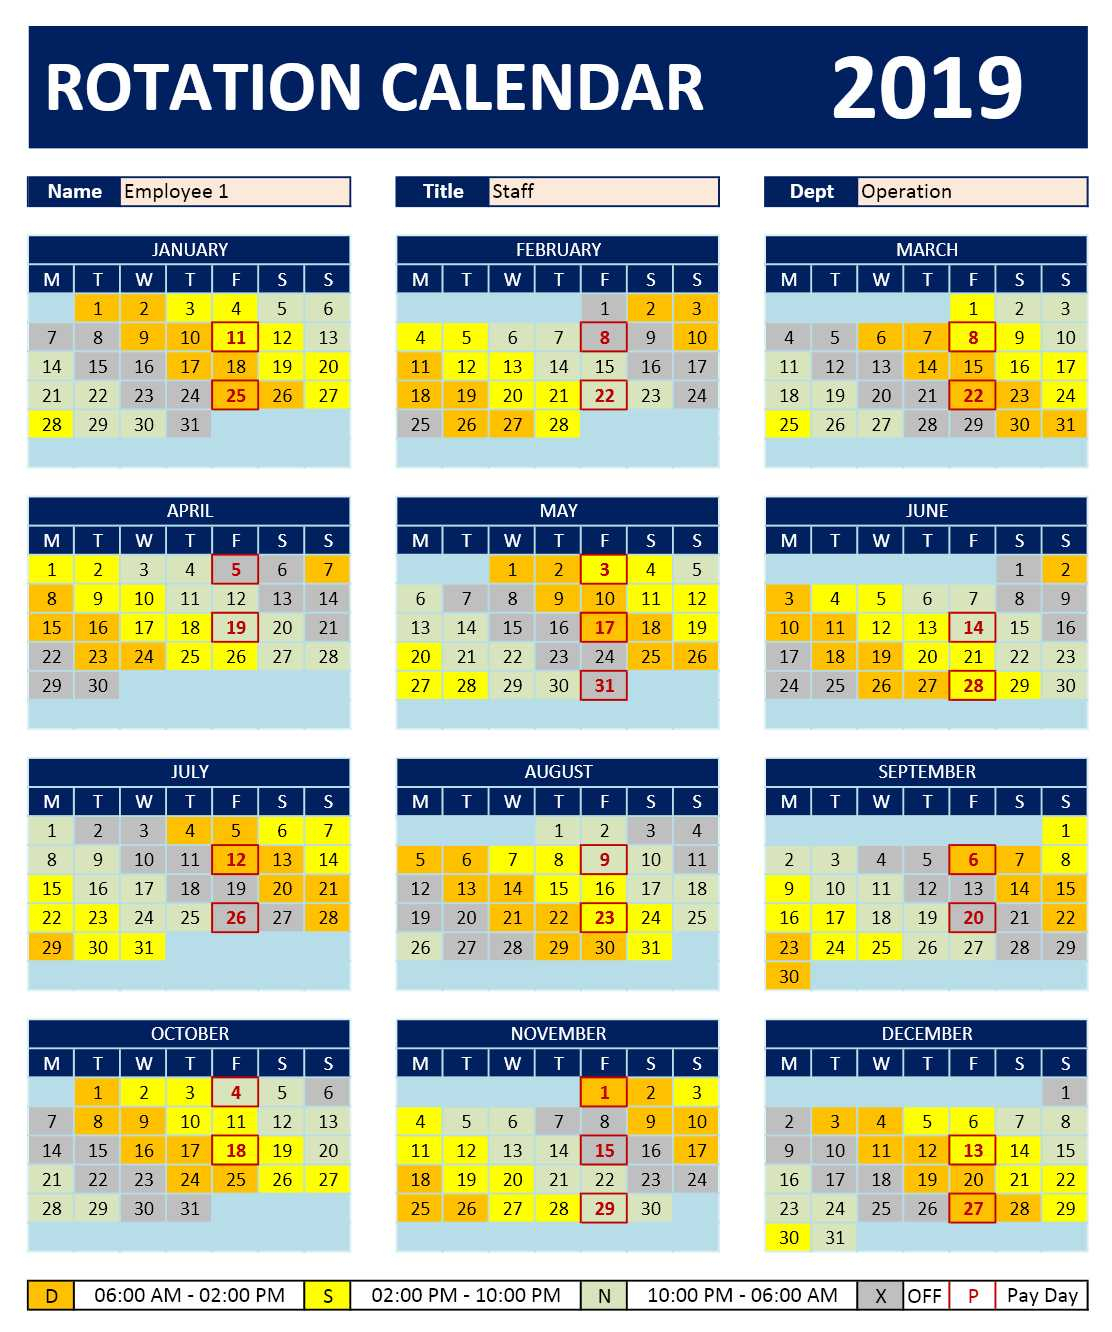 Shift Work Rotation Schedule Calendar » Excelcalendars